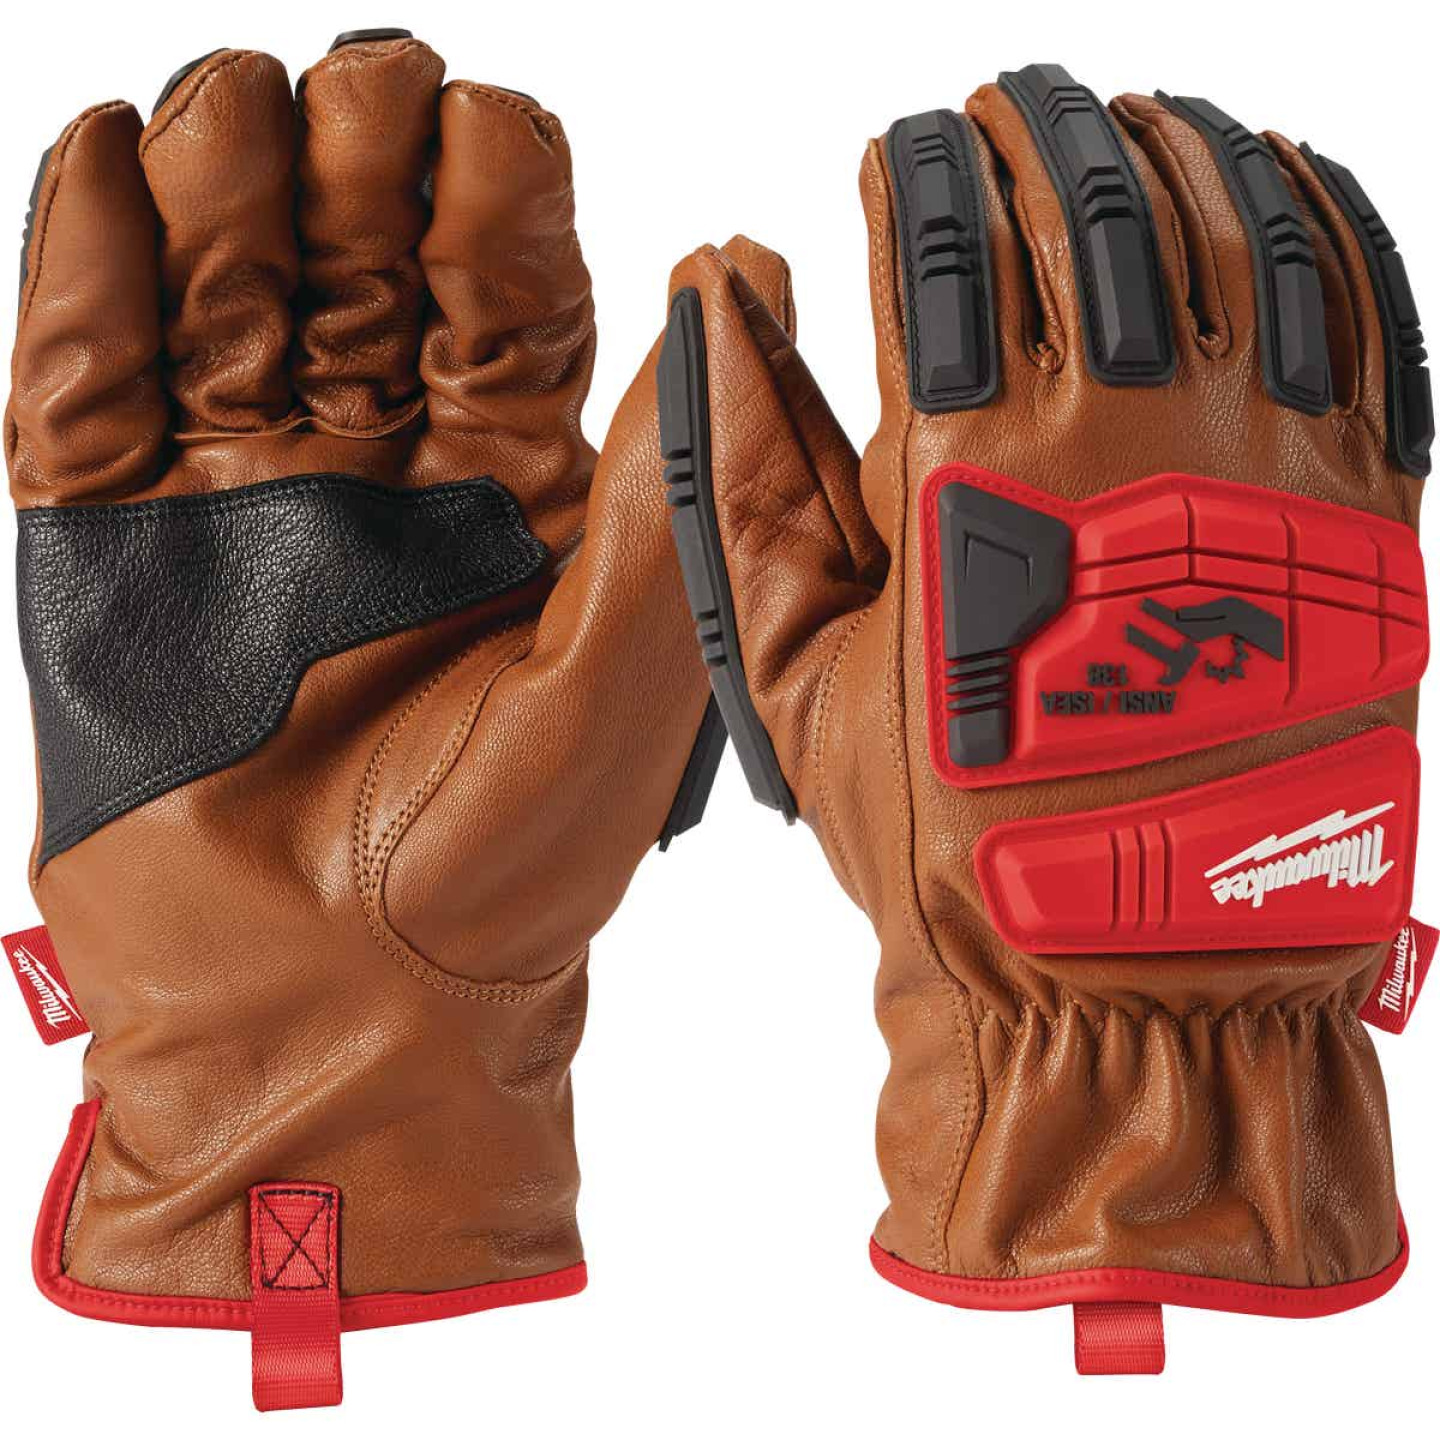 Milwaukee Impact Cut Level 3 Men's XL Goatskin Leather Work Gloves Image 3